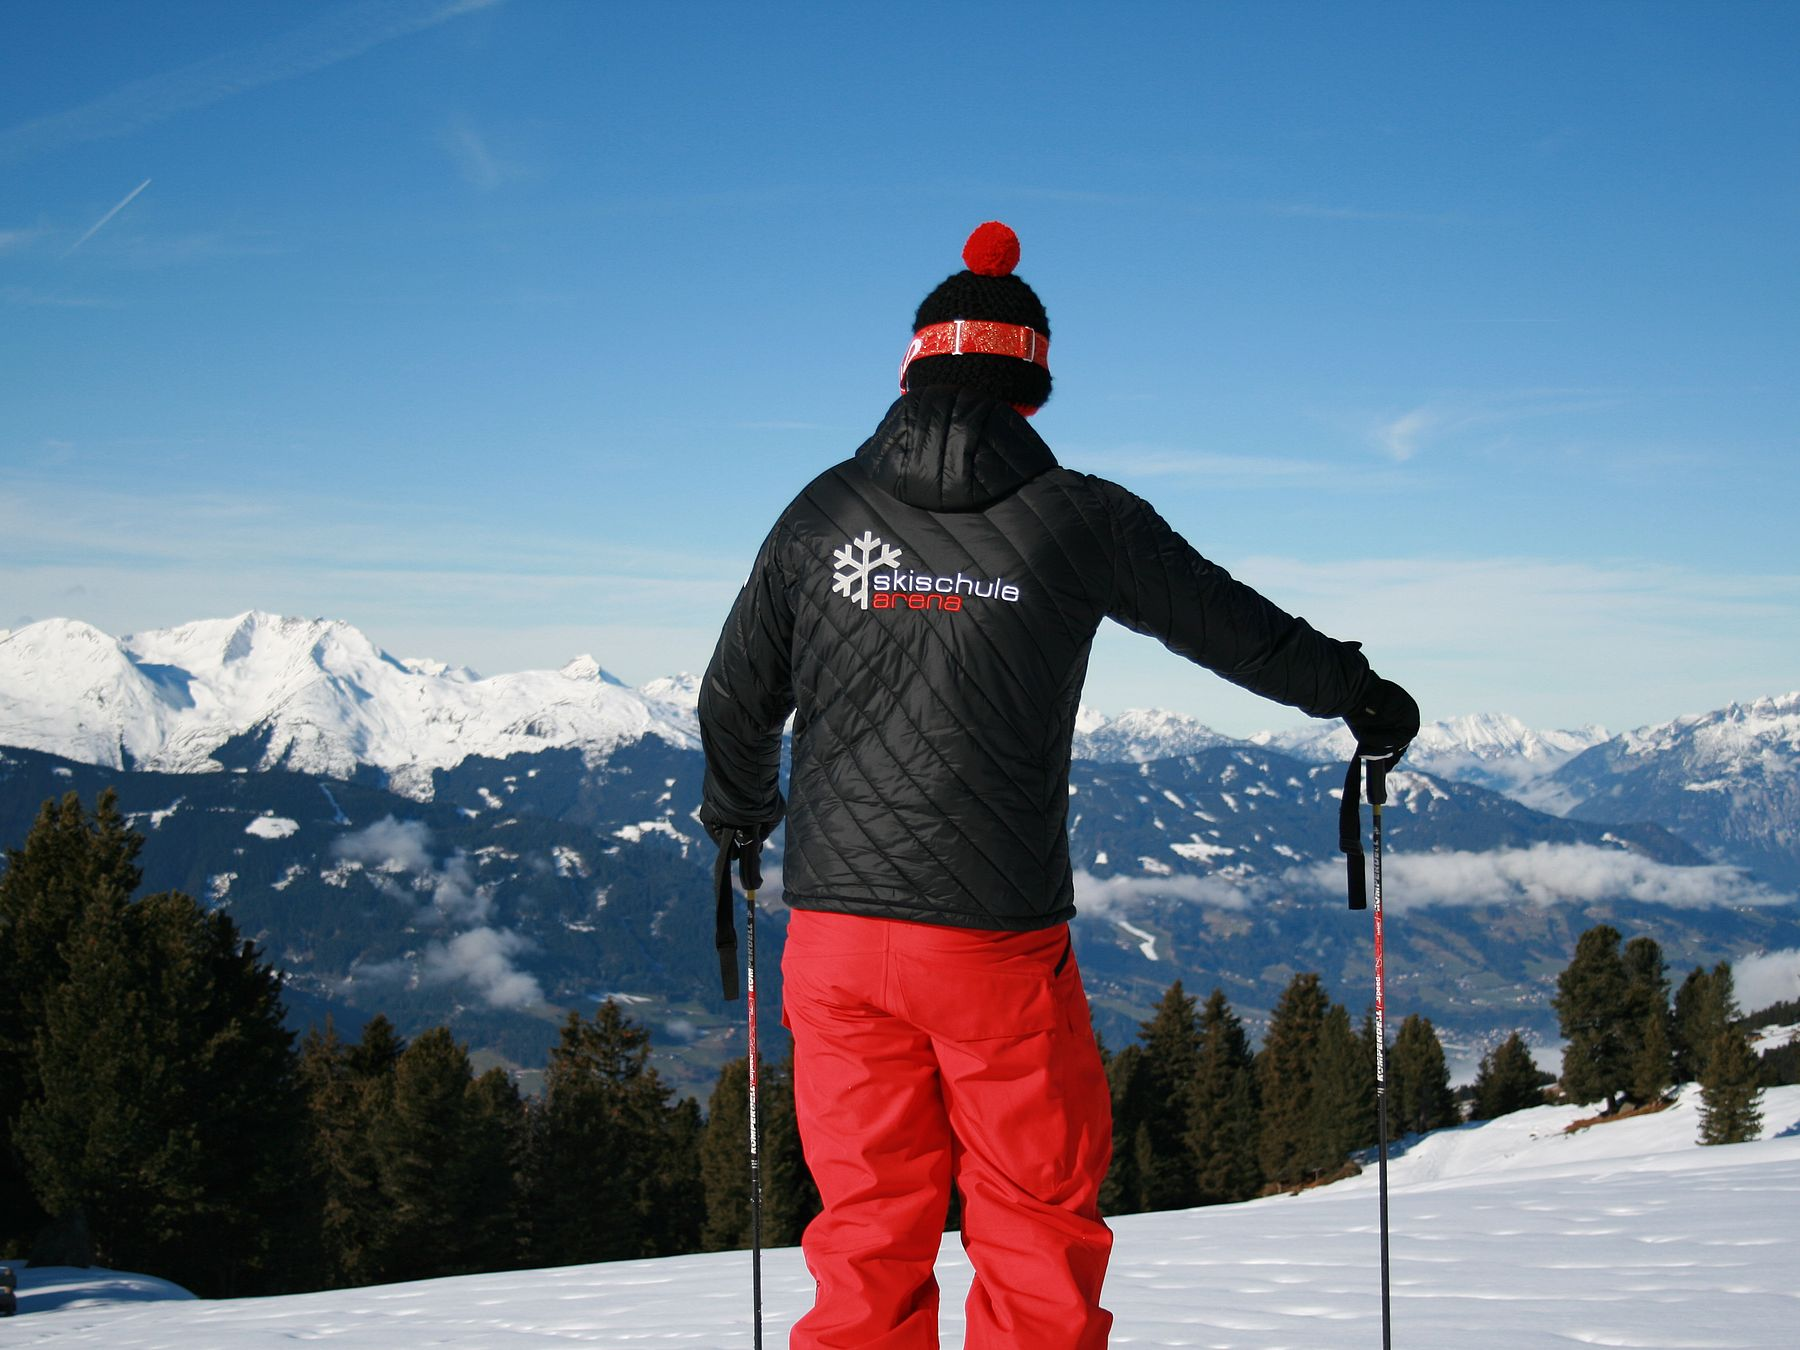 Skischule Arena - your ski school in the Zillertal